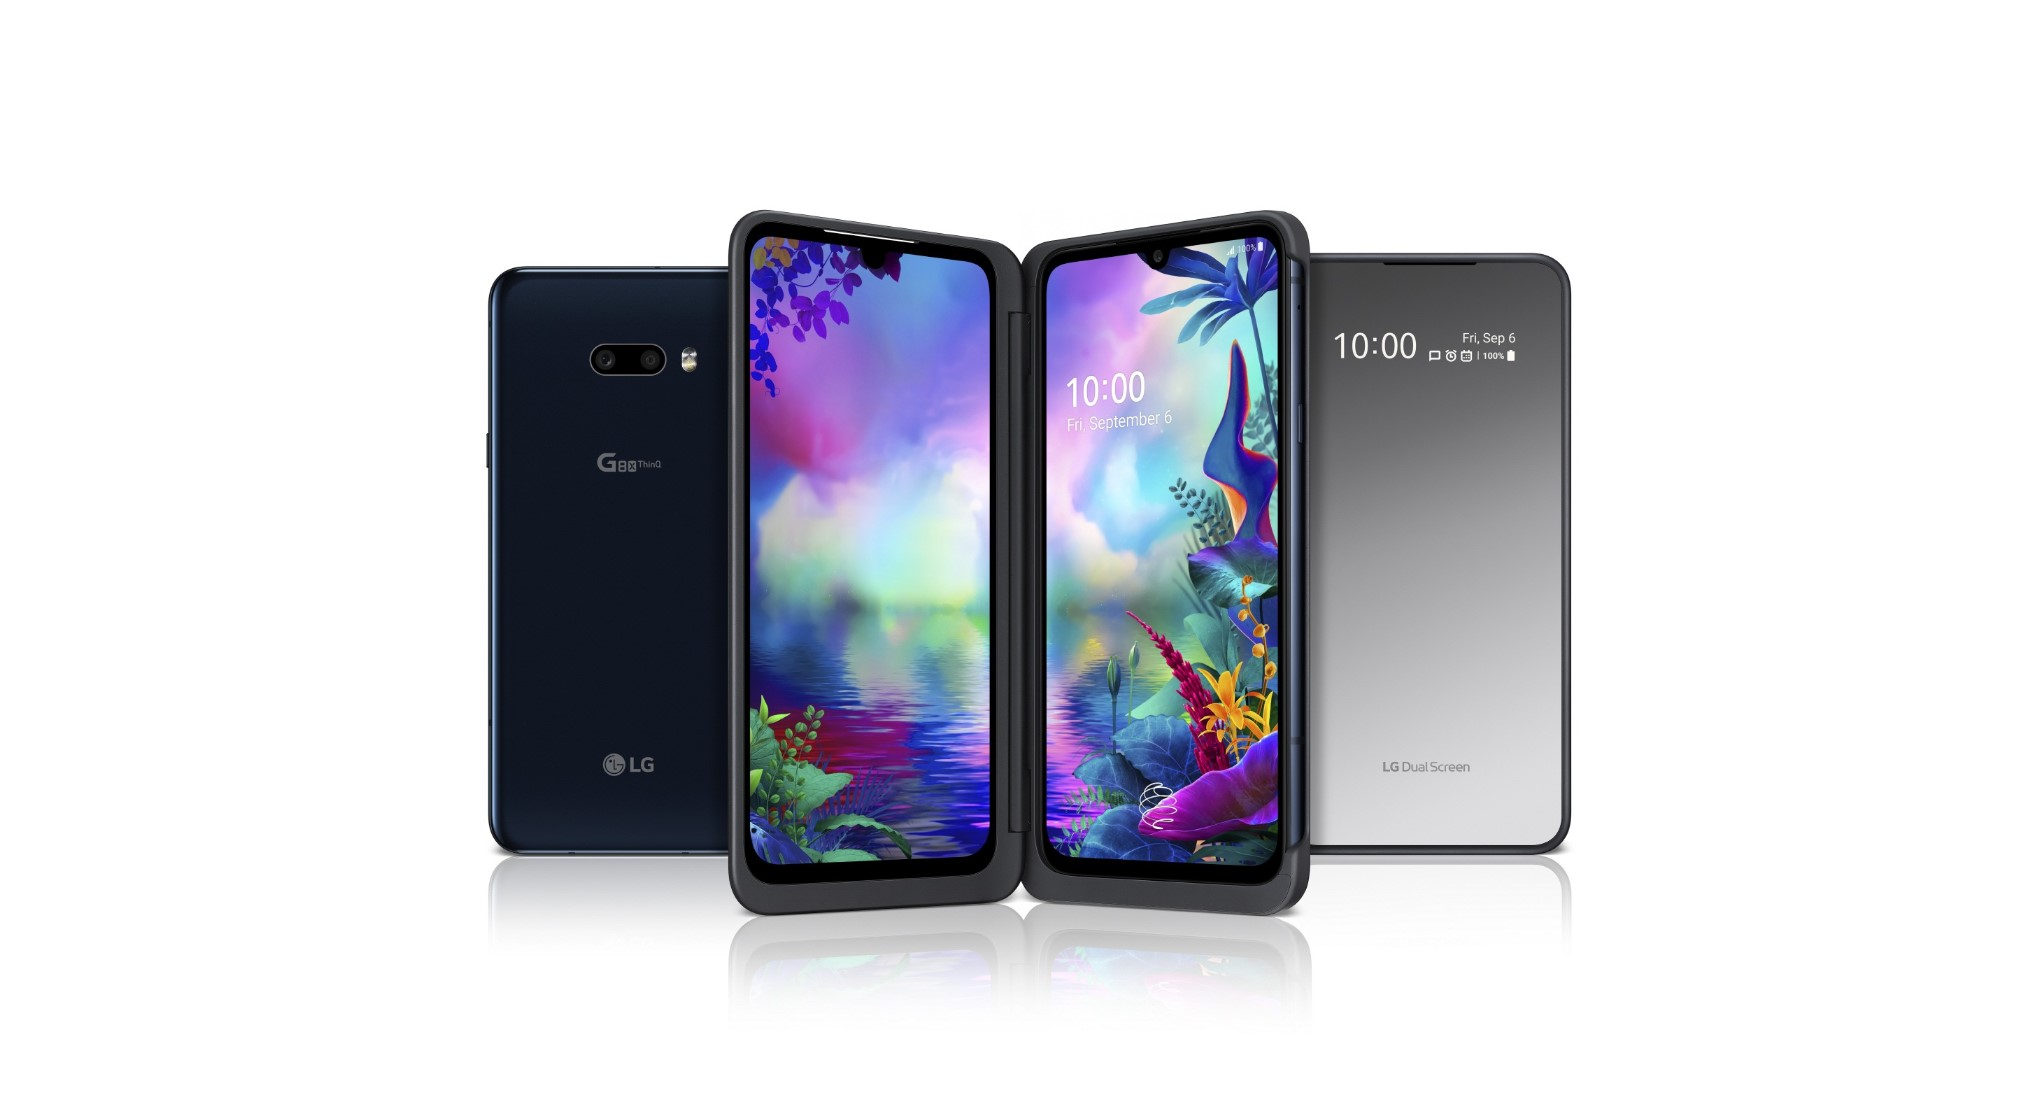 LG G8X ThinQ je nový top model, k dispozici je i LG Dual Screen [IFA]